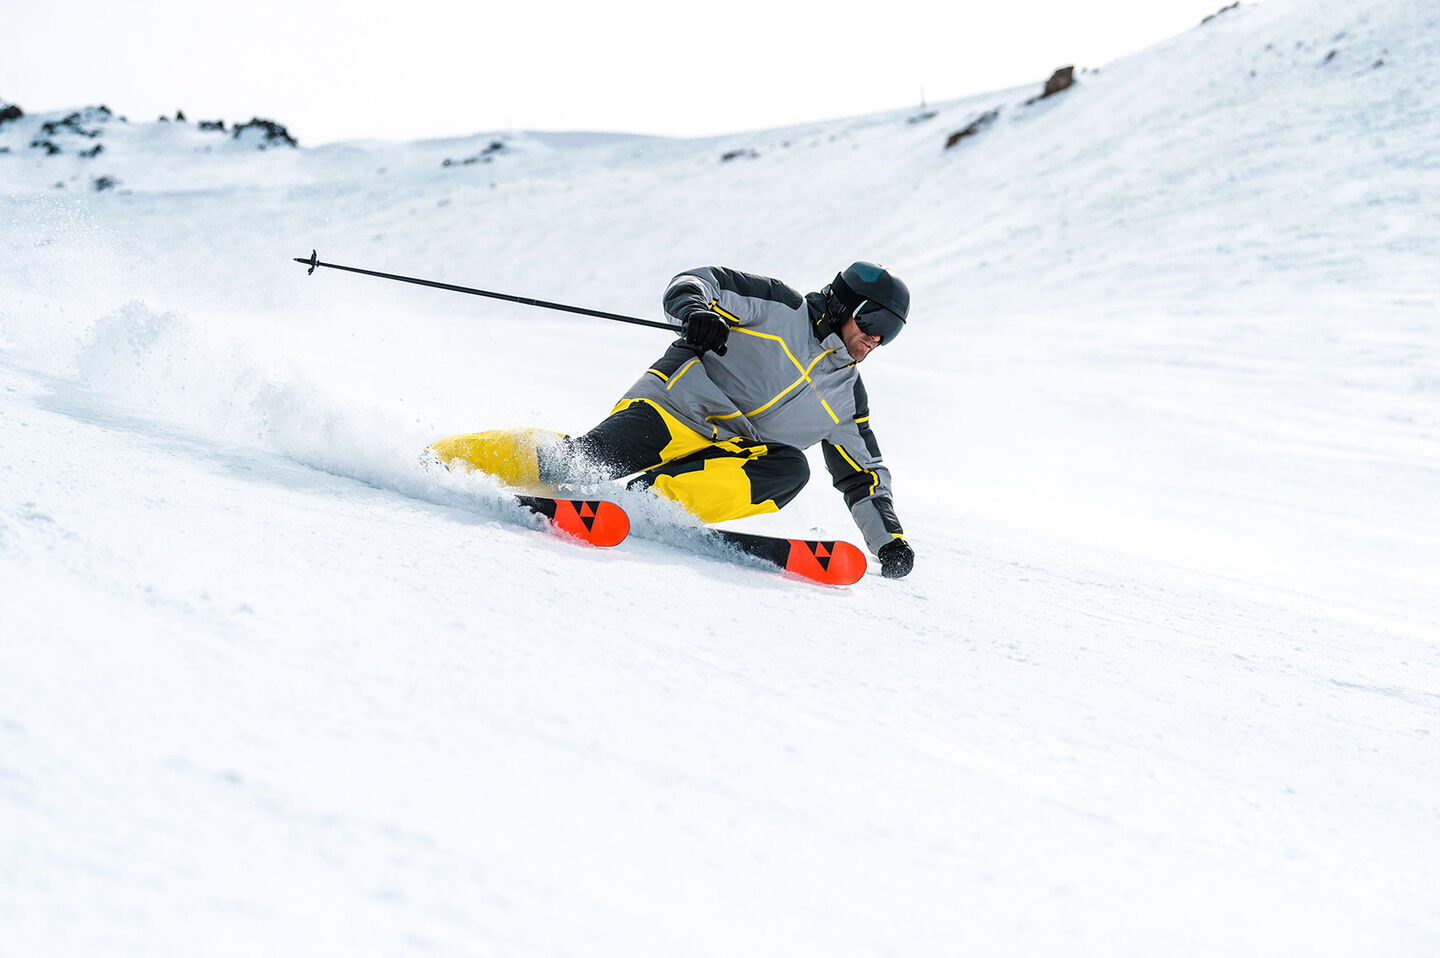 Male skier in Spyder apparel carving through snow